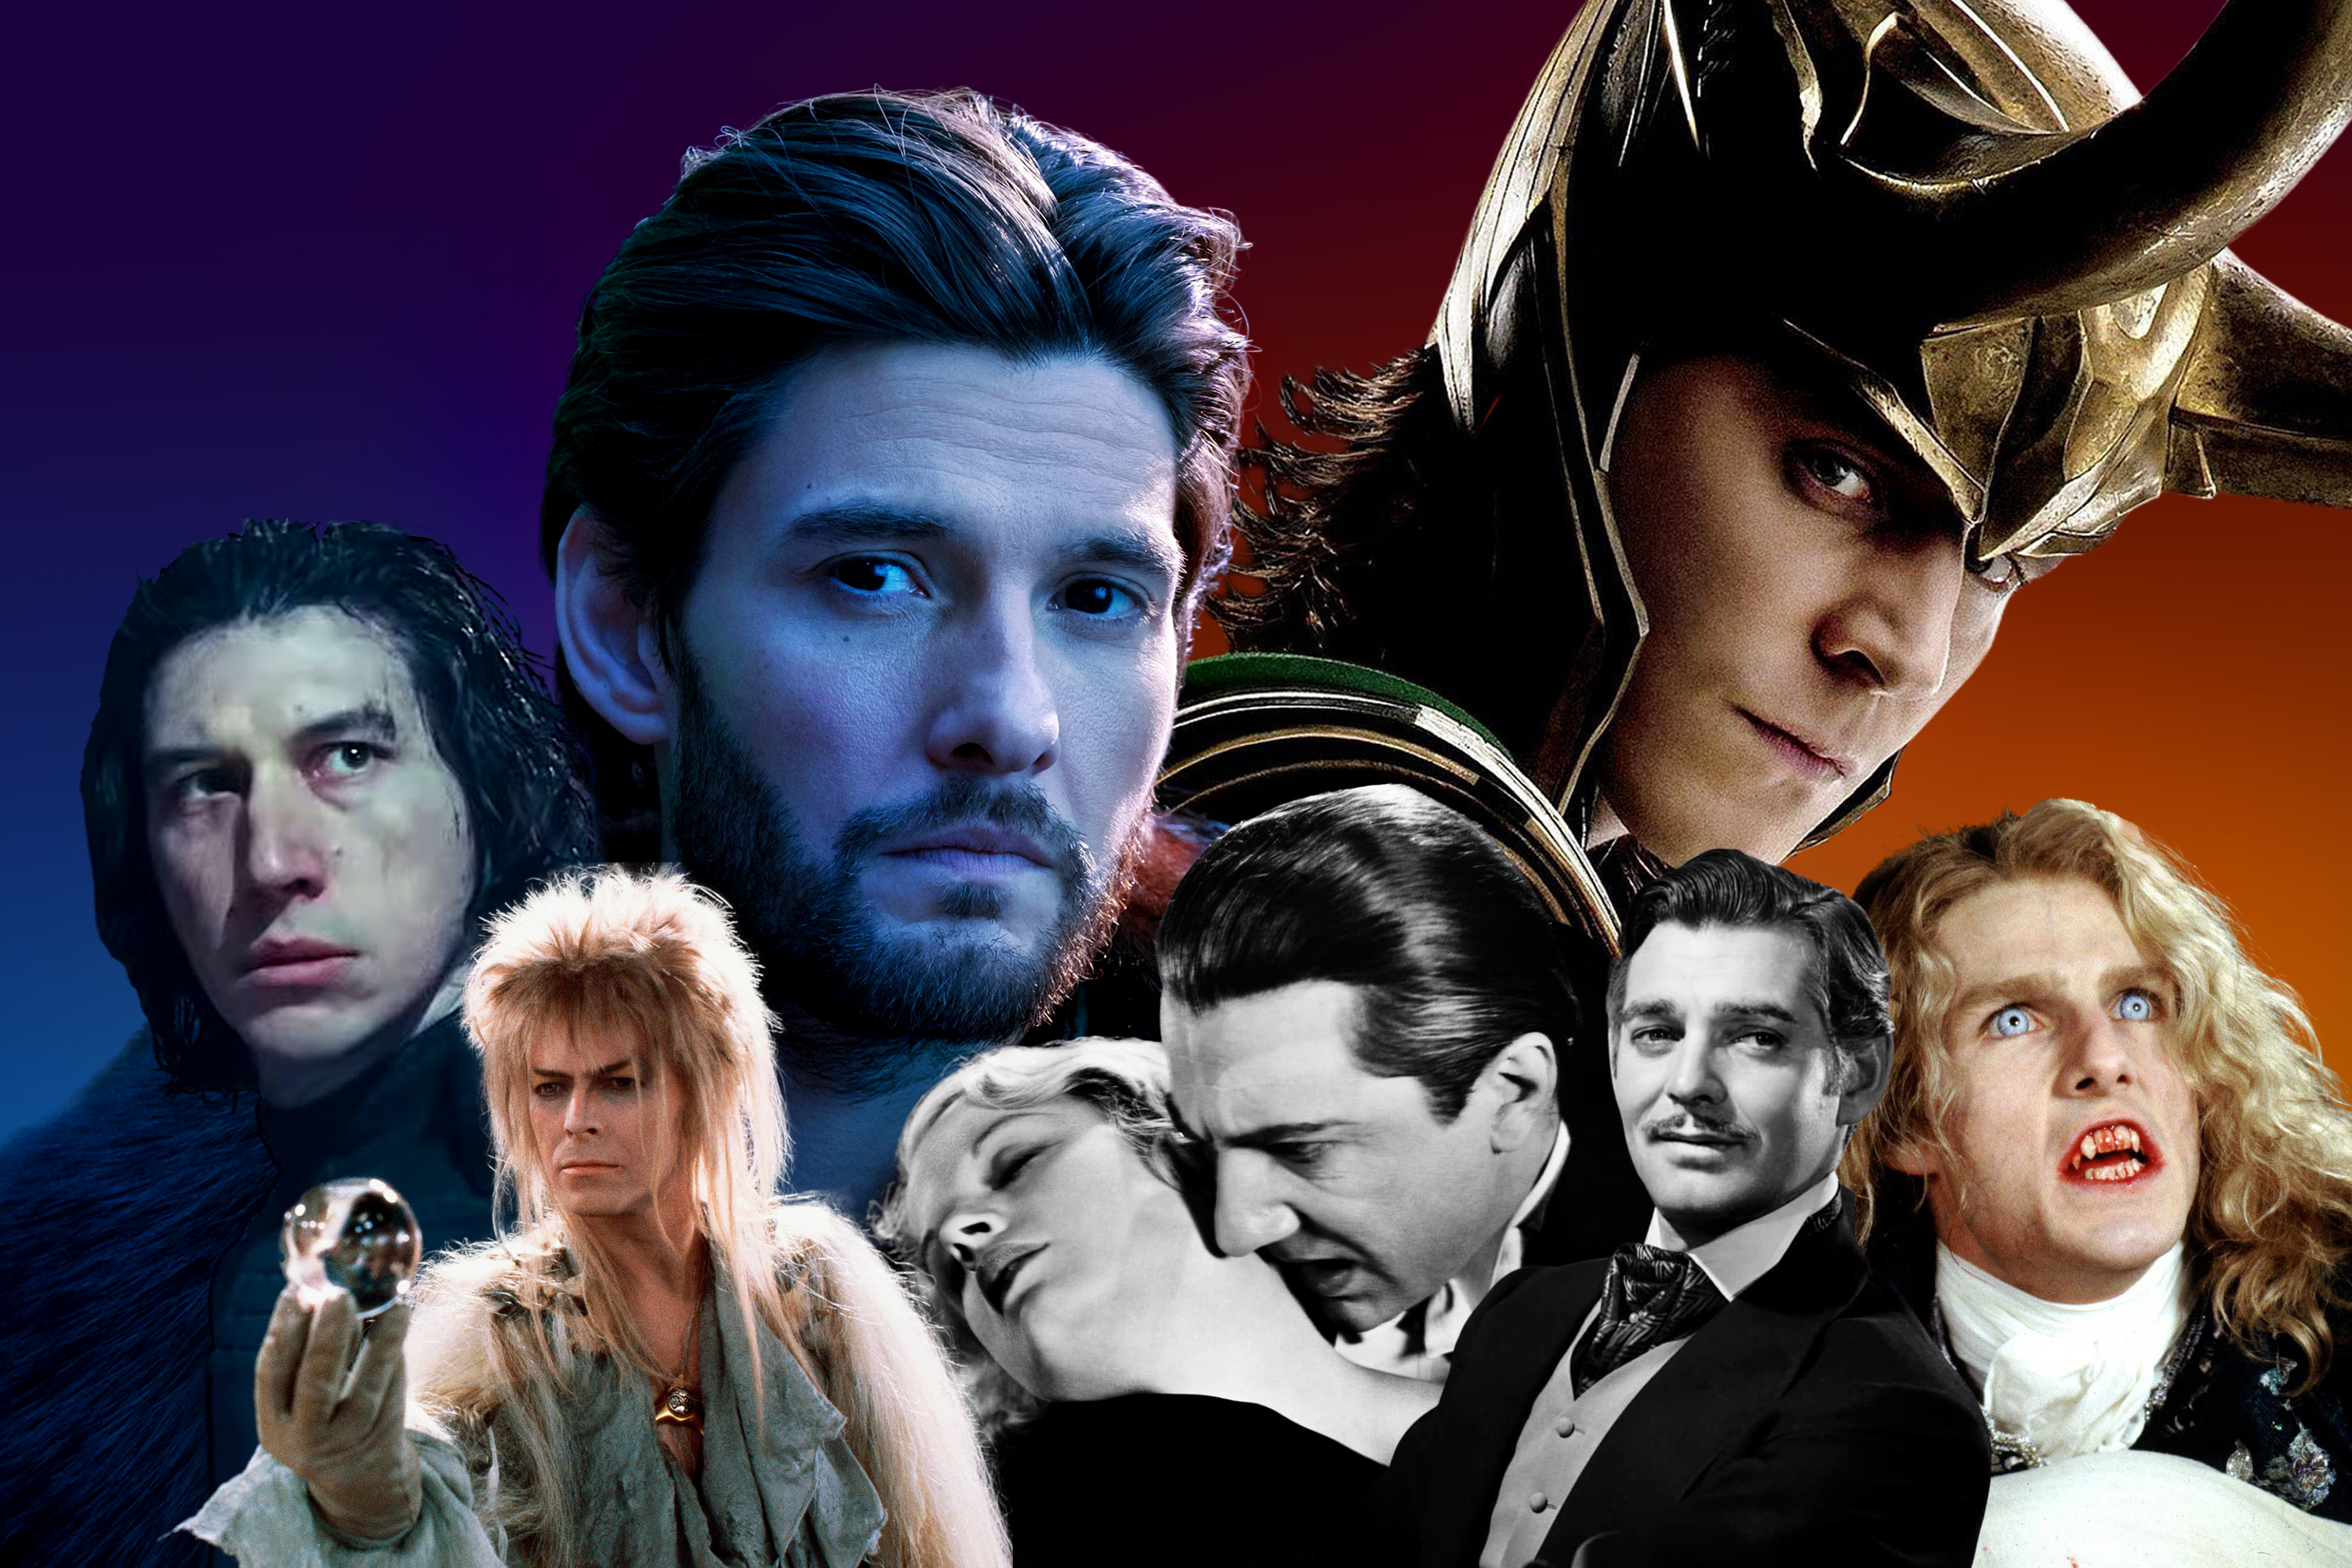 A visual collage of sexy villains that have caused controversy, including Kylo Ren from the Star Wars sequel trilogy, Jareth from Labyrinth, Tom Cruise as Lestat, Clark Cable as Rhett Butler, Tom Hiddleston as Loki, Bela Legosi as Dracula, and Ben Barnes as General Kirigin in Shadow and Bone